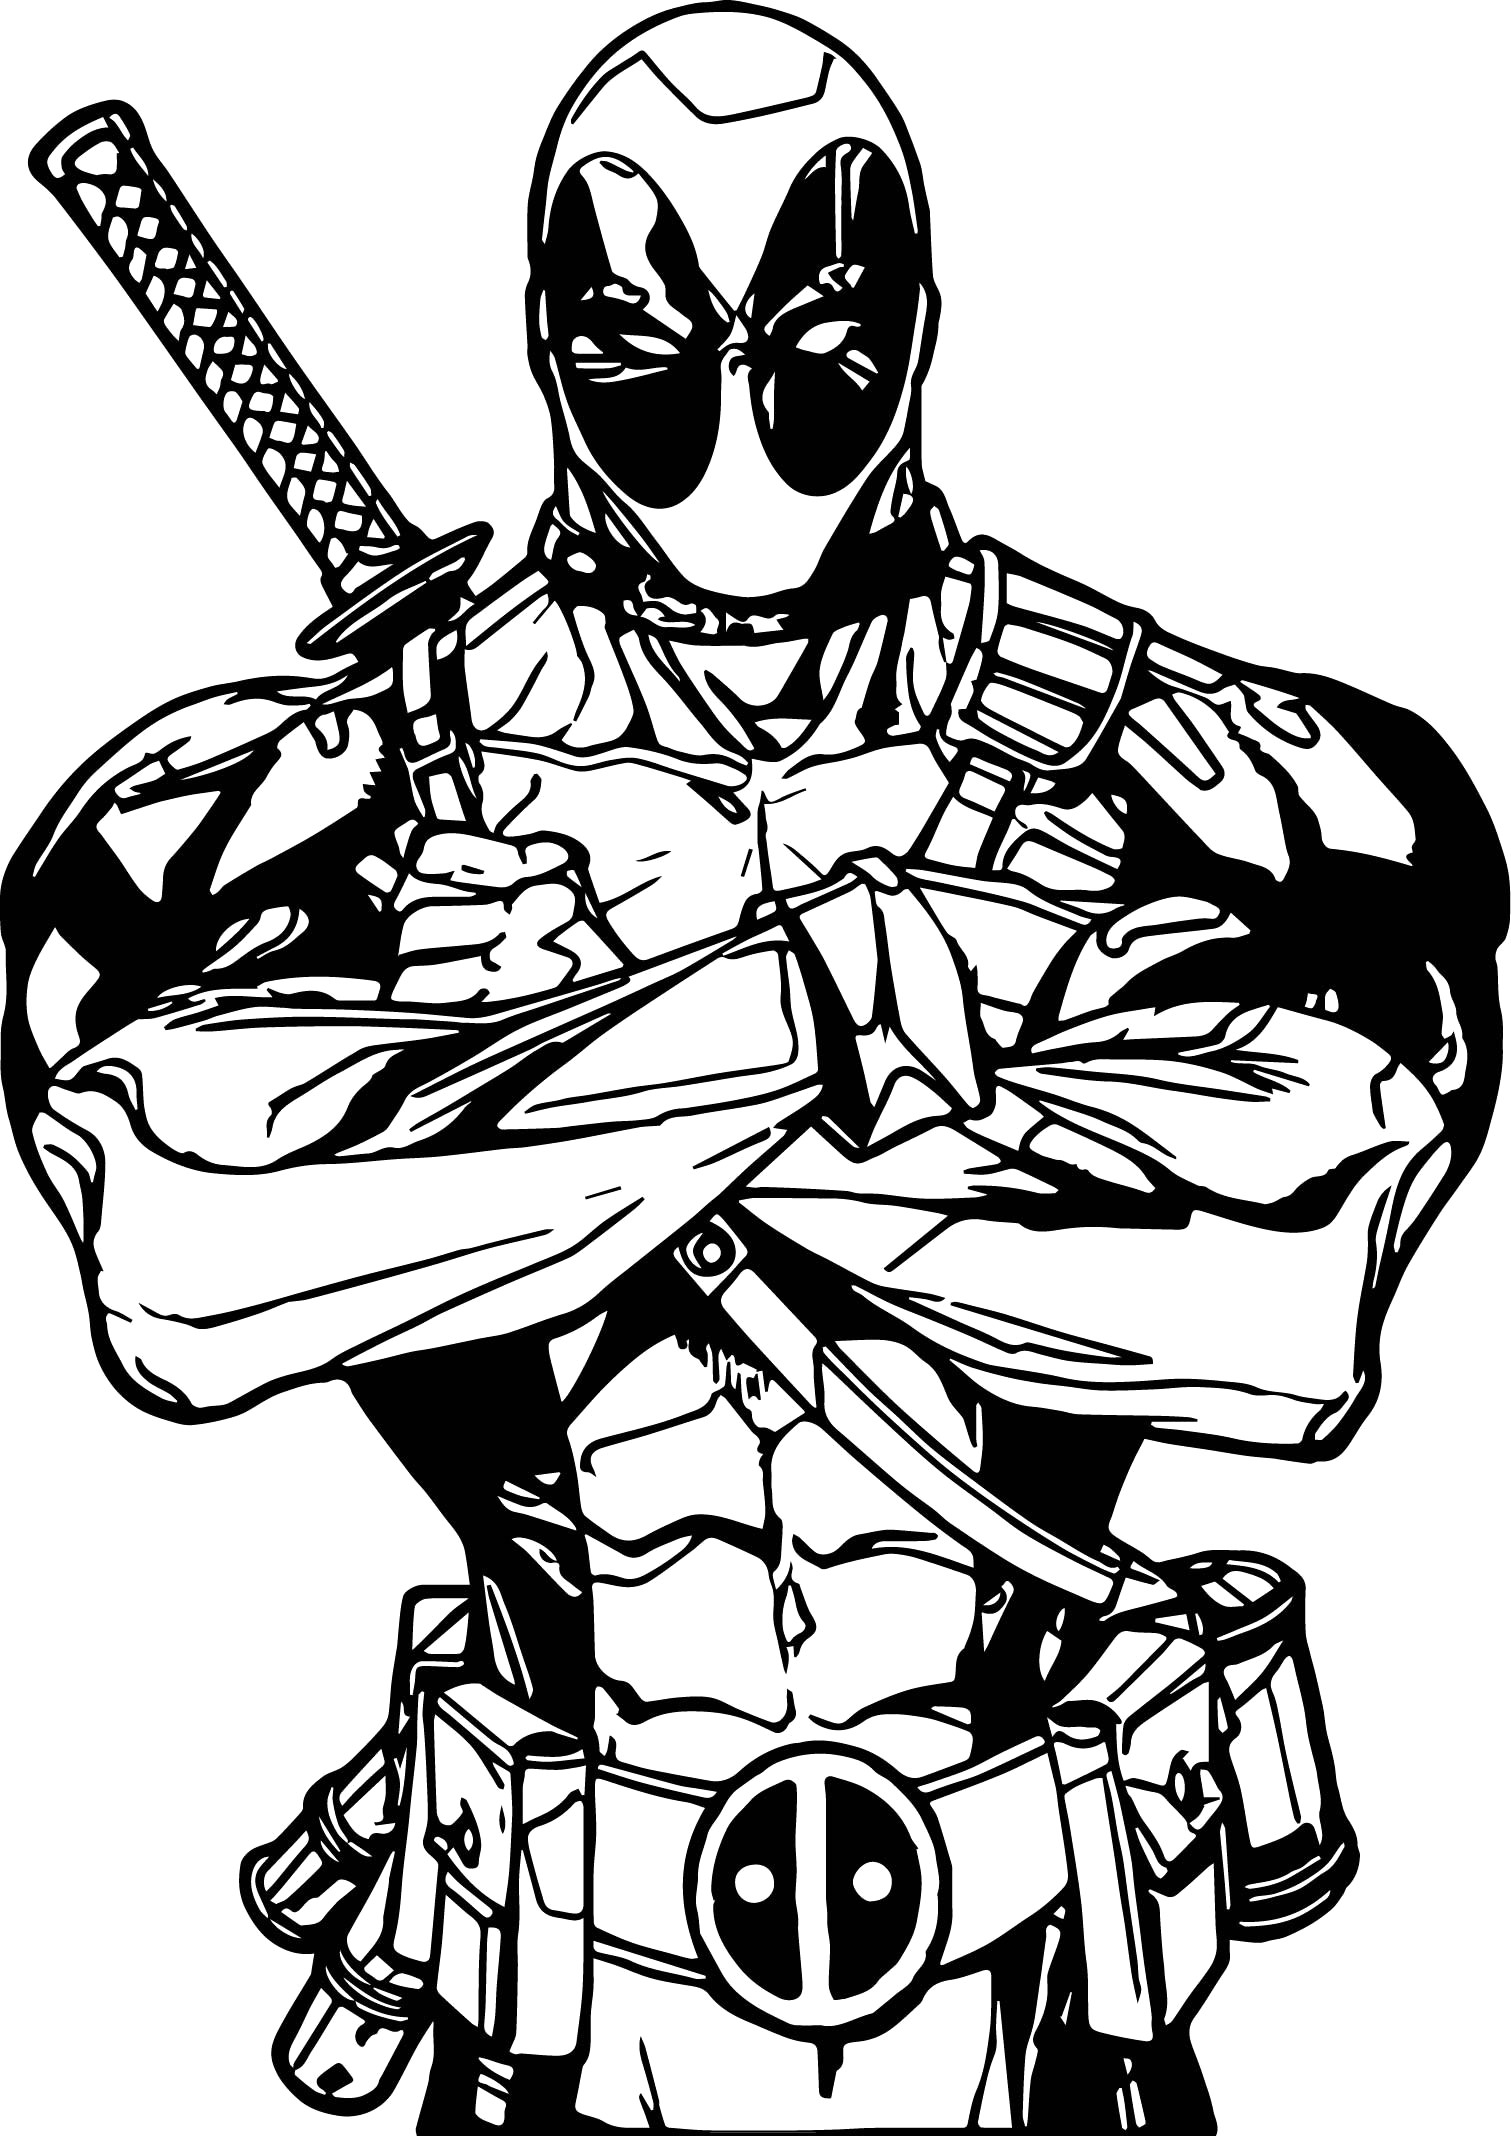 lego deadpool coloring pages pin by wecoloringpage coloring pages on wecoloringpage lego pages deadpool coloring